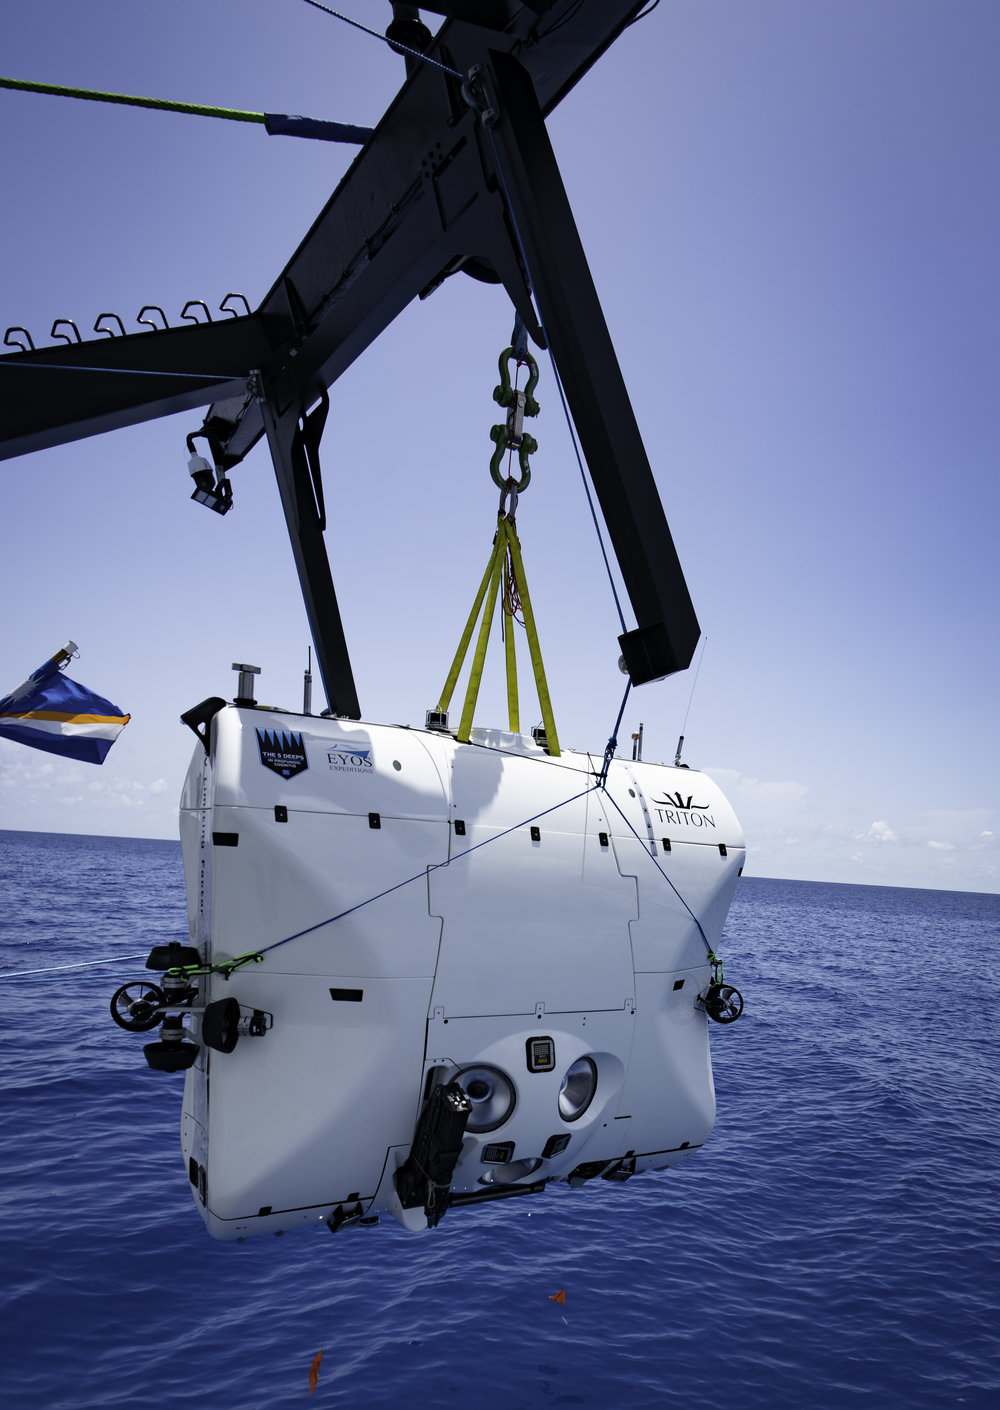 Above: the Full-Ocean-Depth submersible that will contain one scientist/filmmaker and one pilot to the deepest places recorded on earth where only three people have been before. ©EYOS